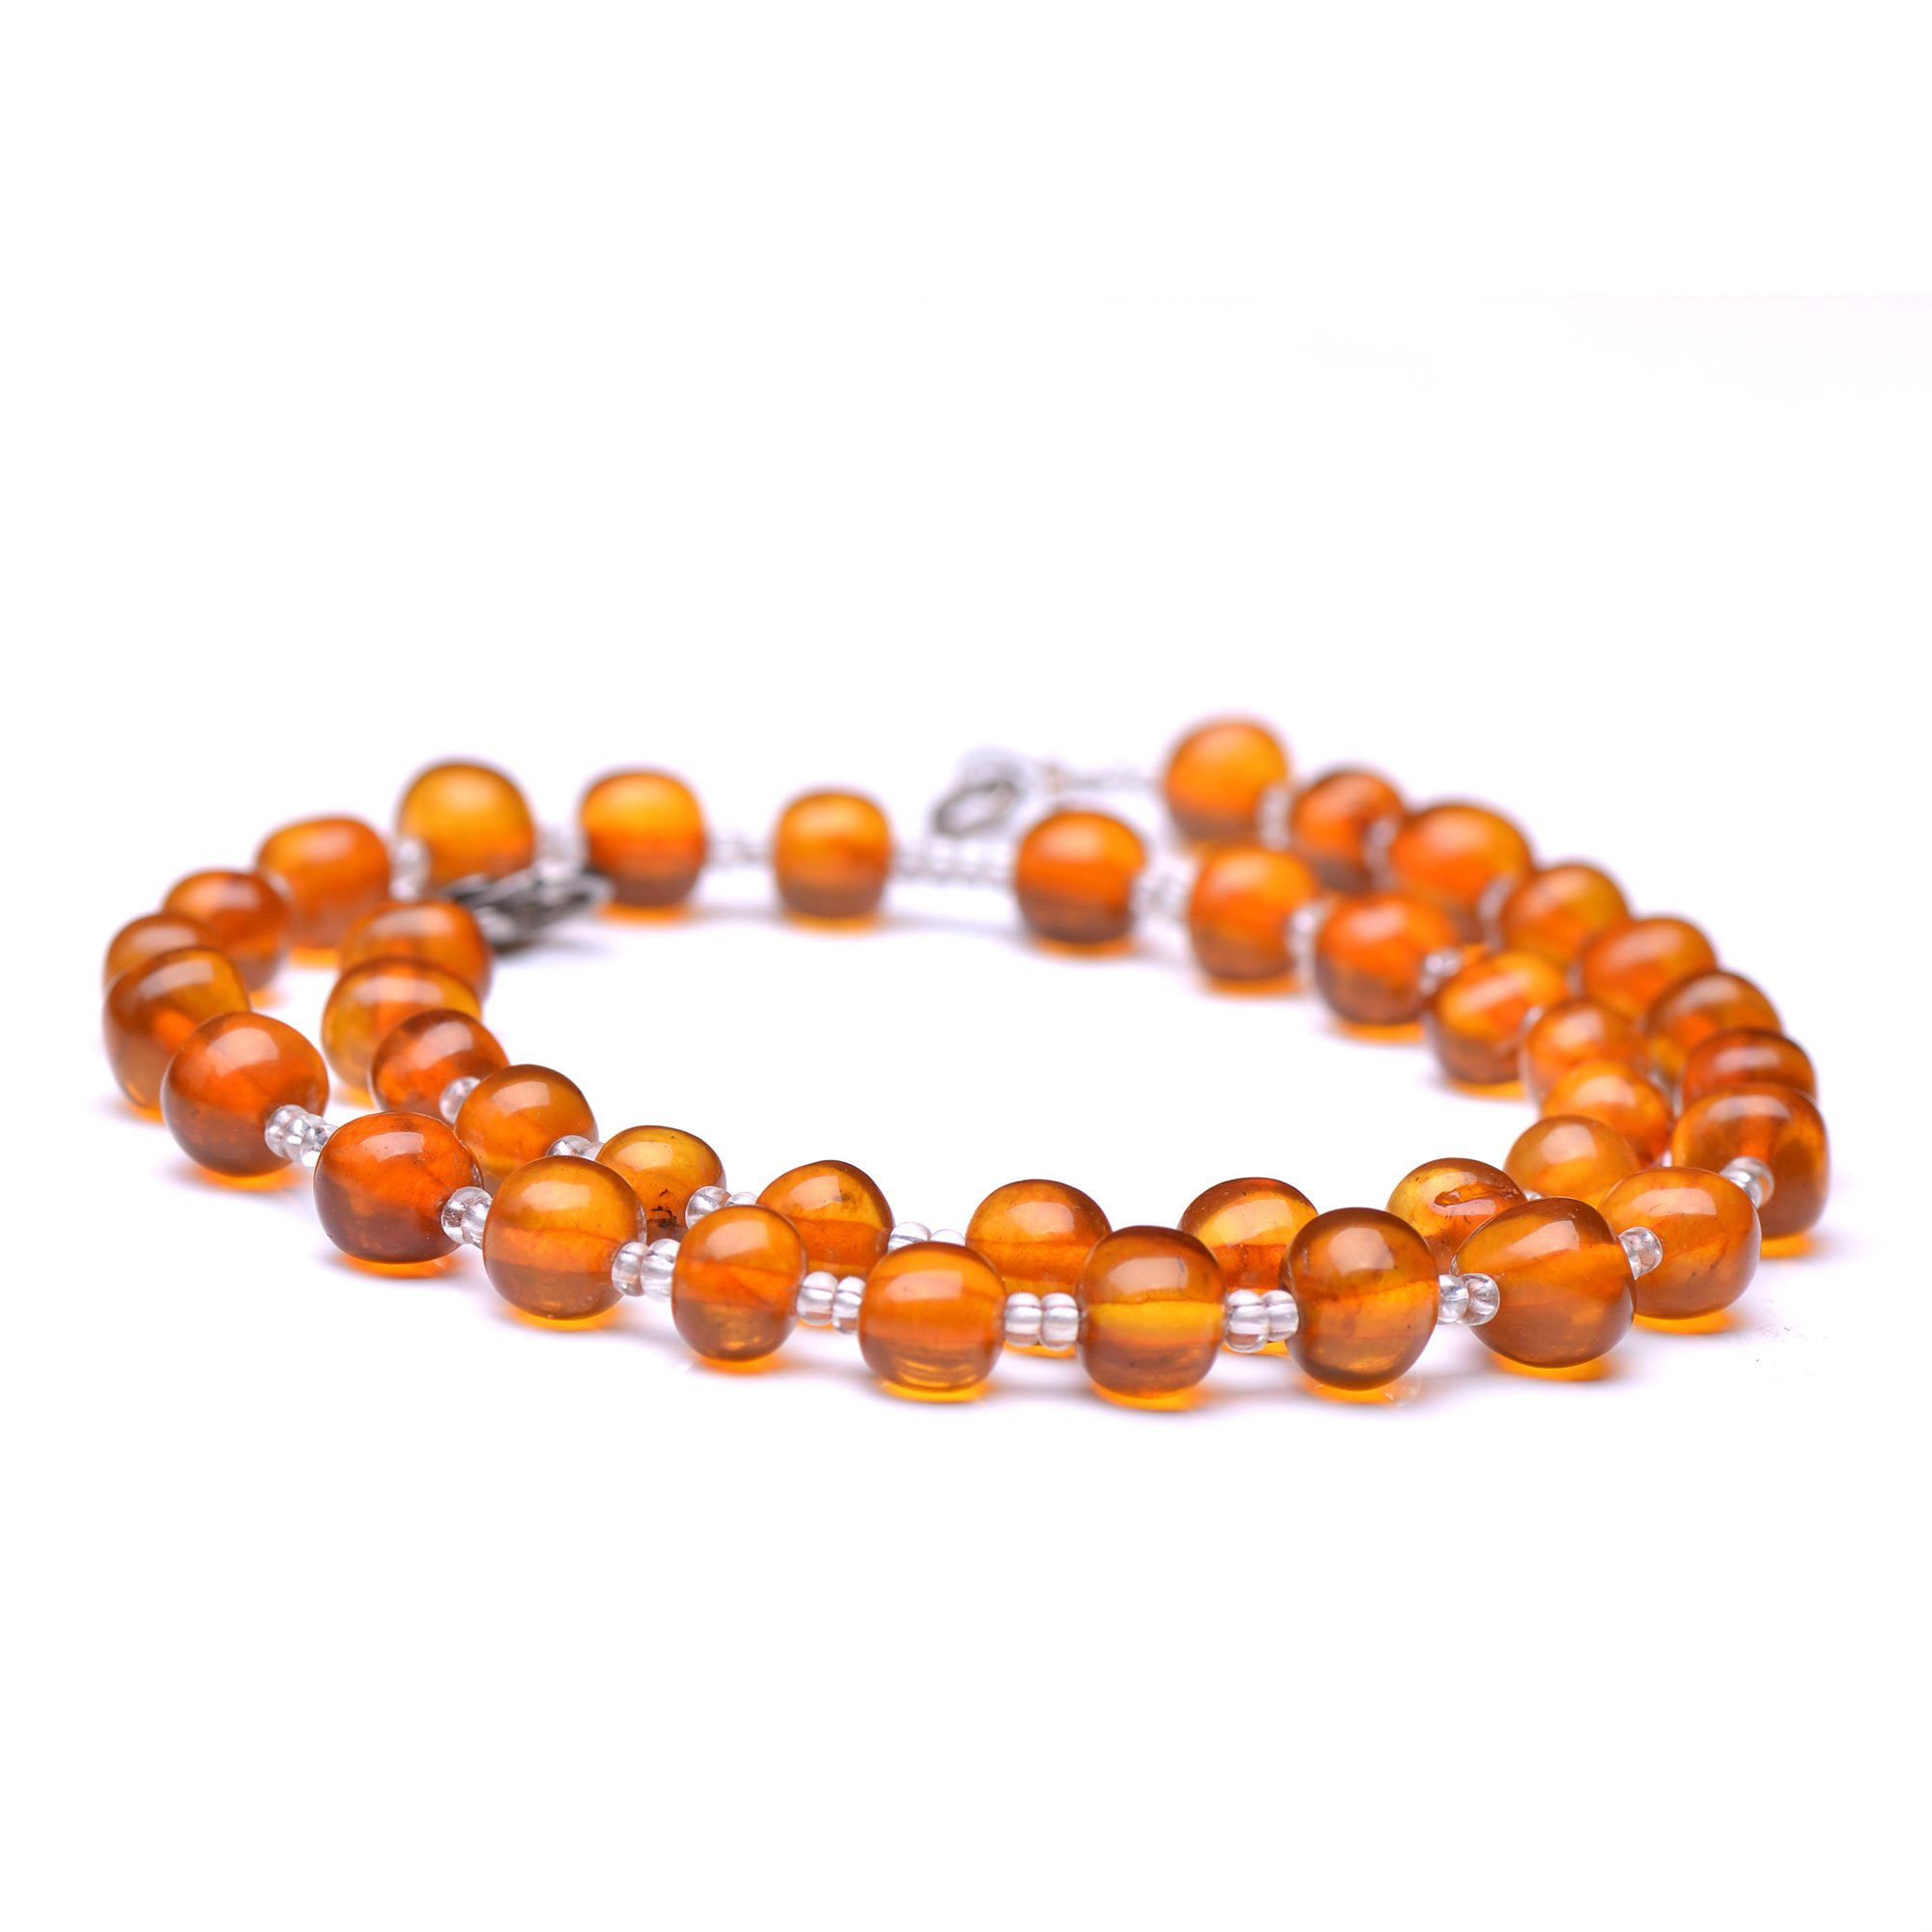 Baltic Amber Teething Necklace (15.4'') - Baltic Amber Jewelry - Kid Necklace